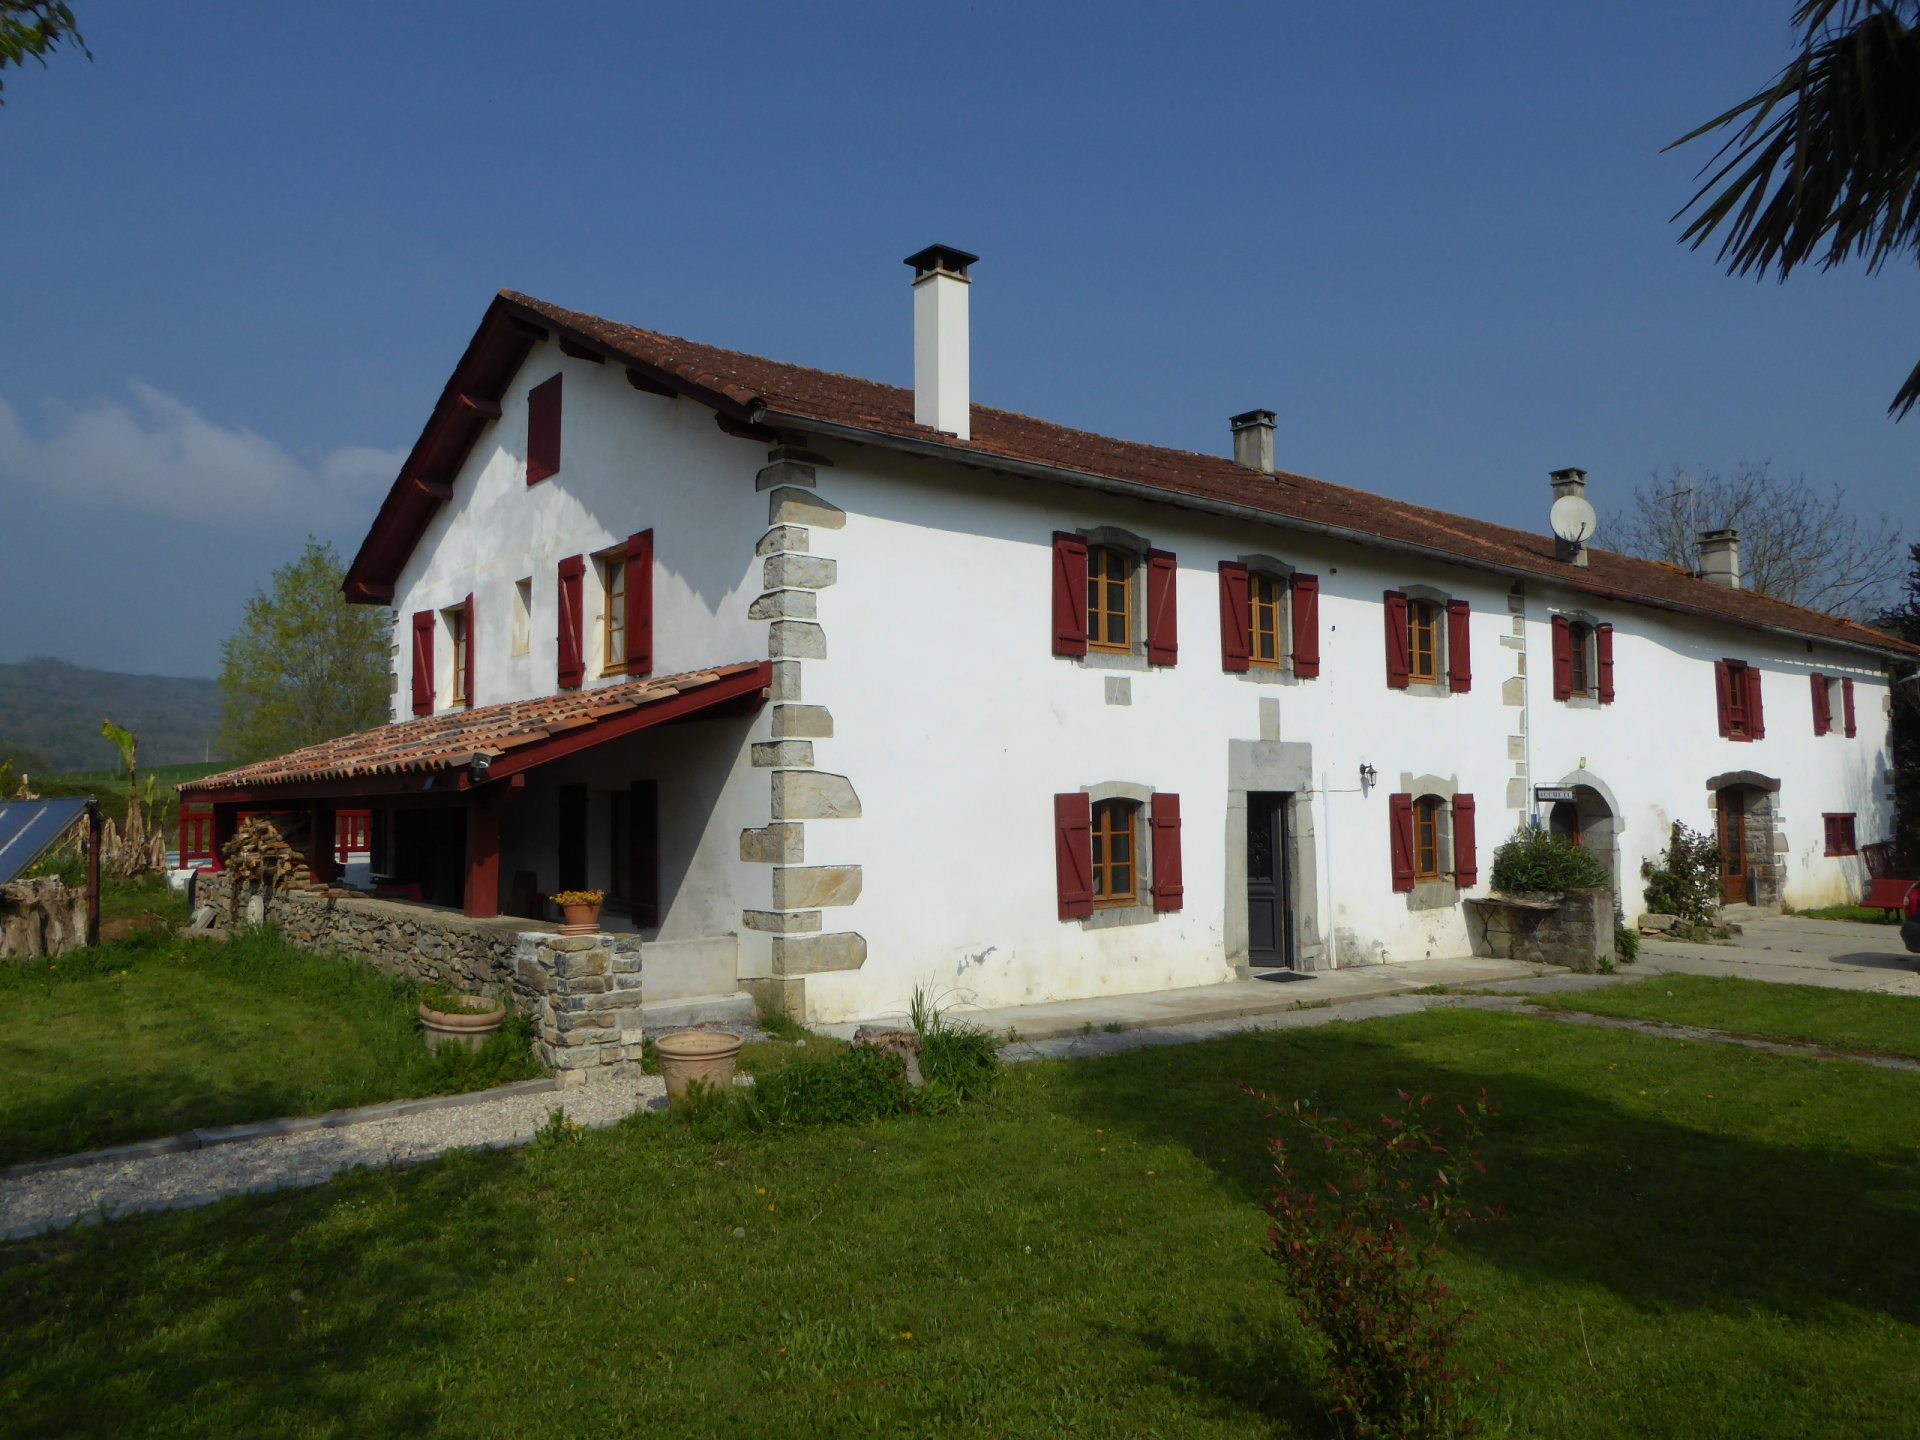 Near SAINT PALAIS - Ideal business opportunity in the heart of the Pays Basque.